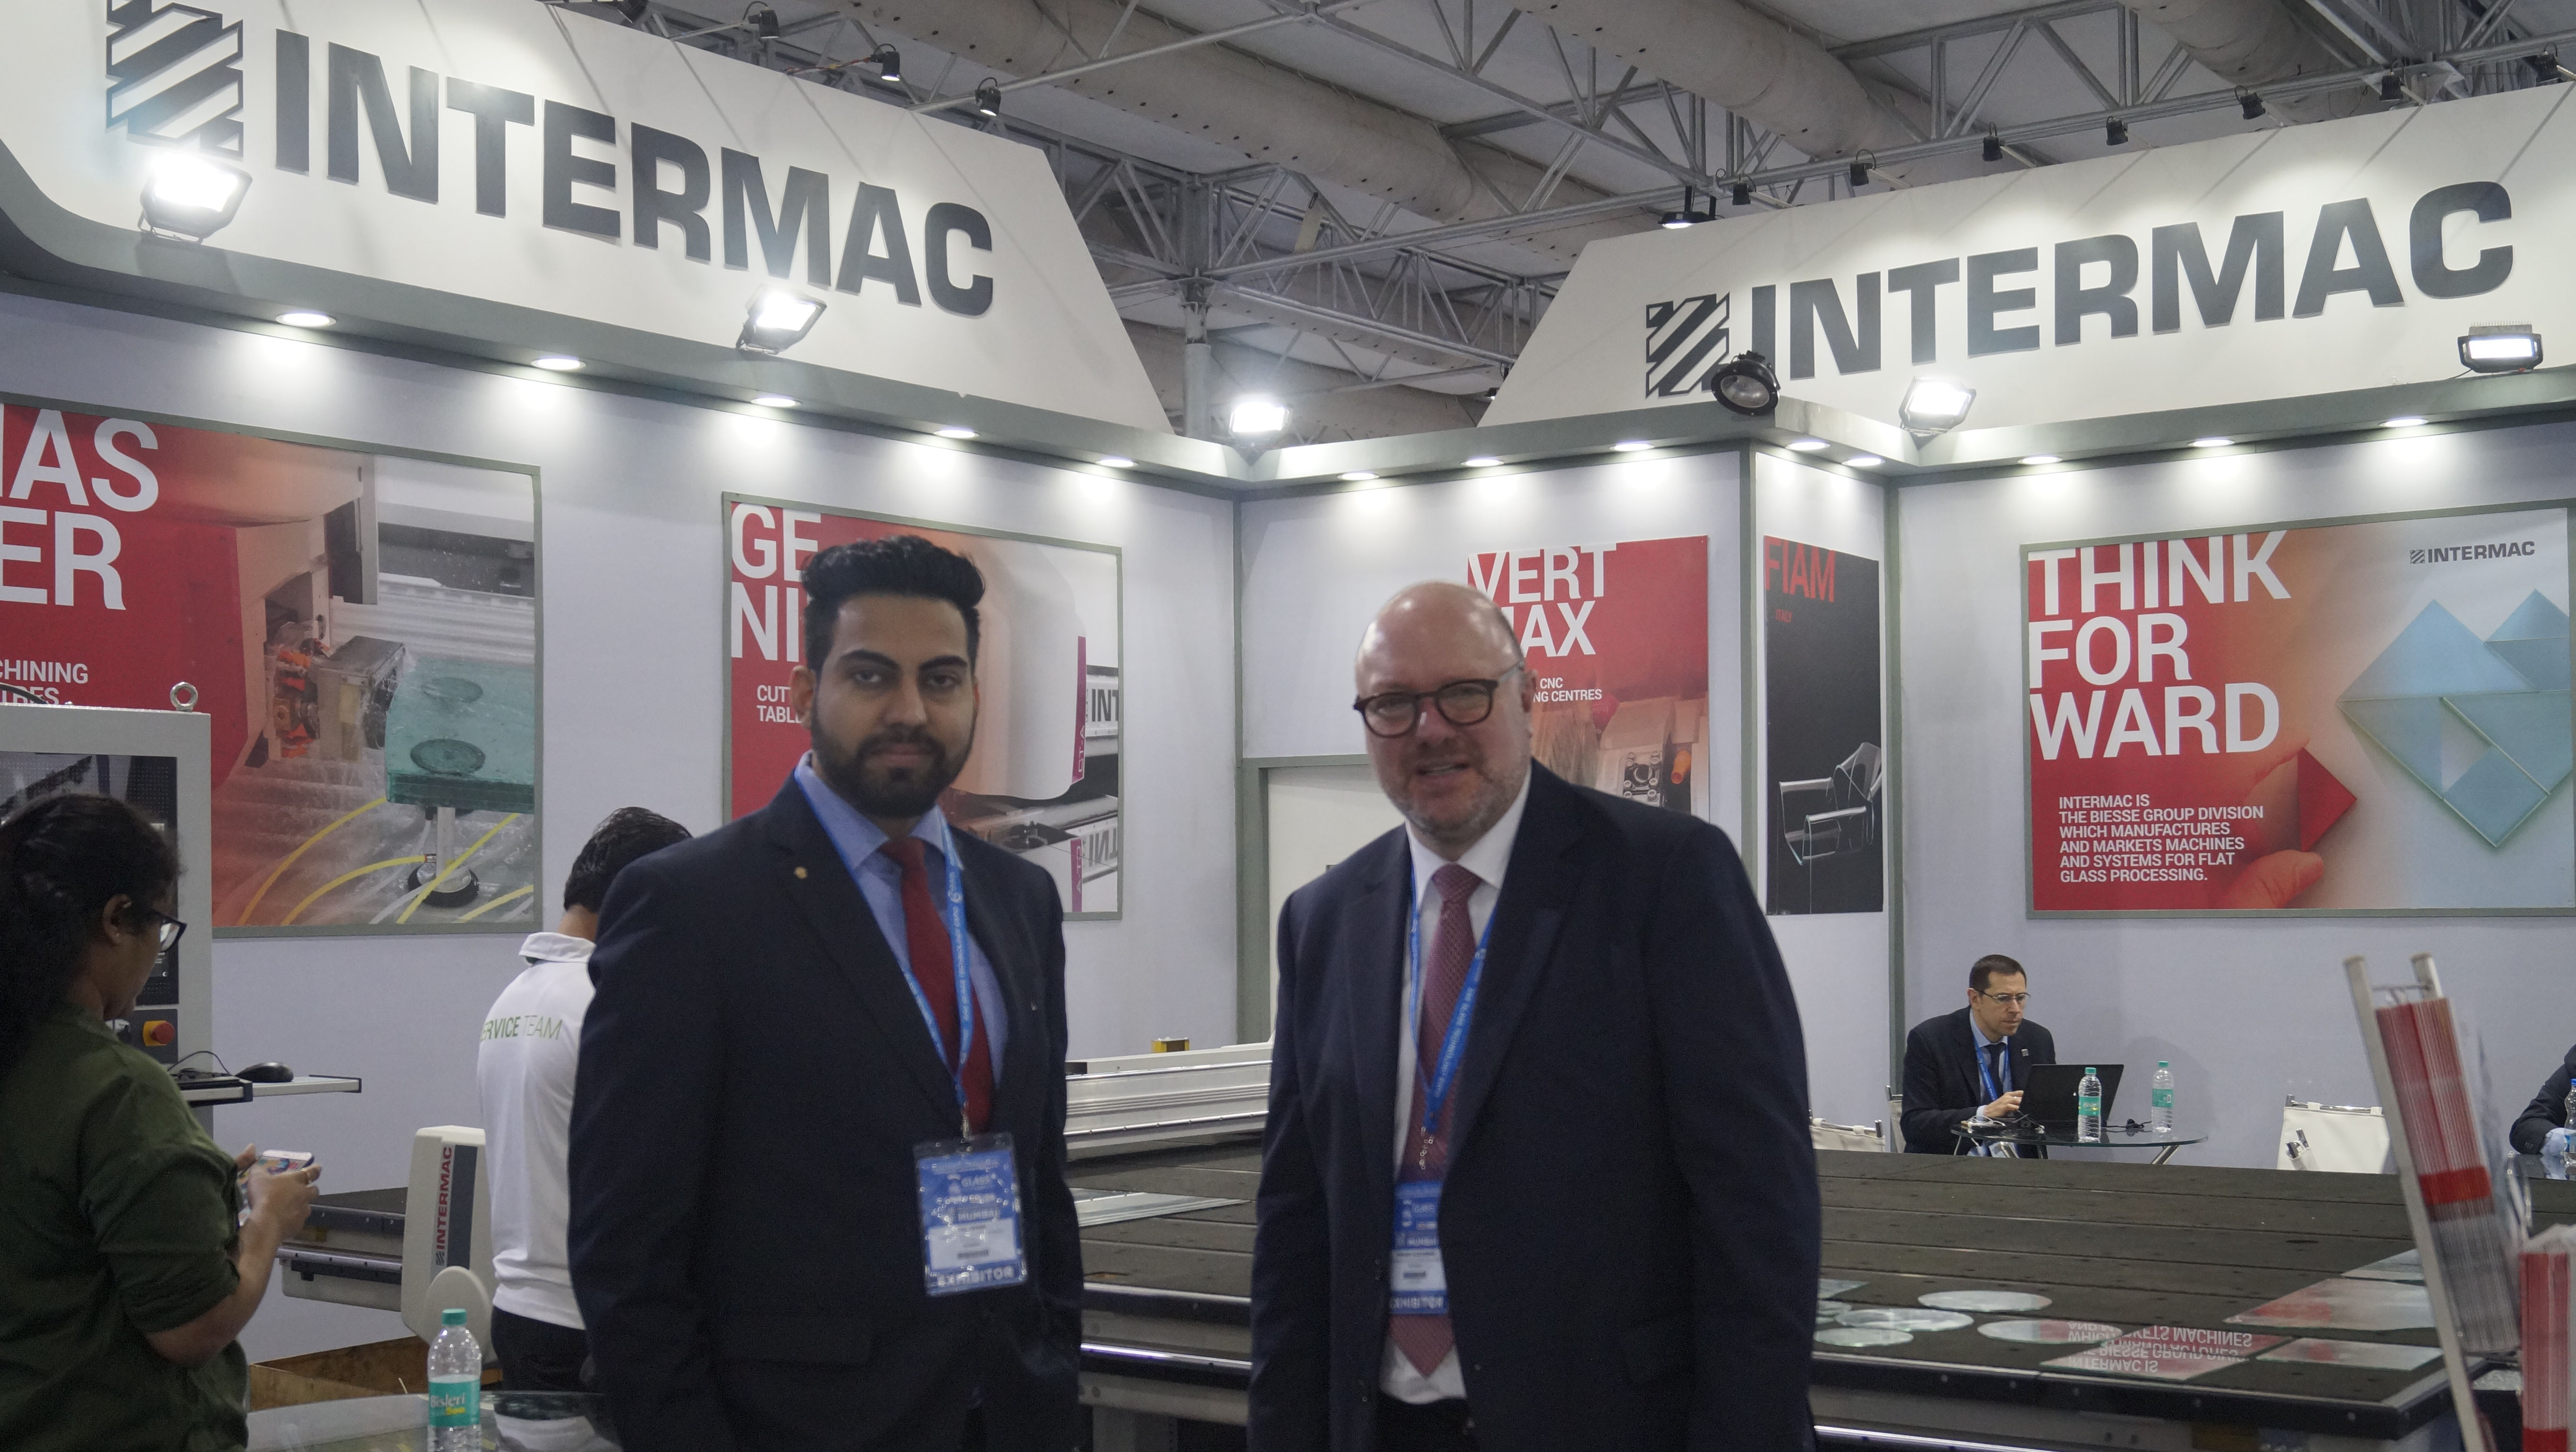 Intermac participated in the Mumbai glass show: Photo 1